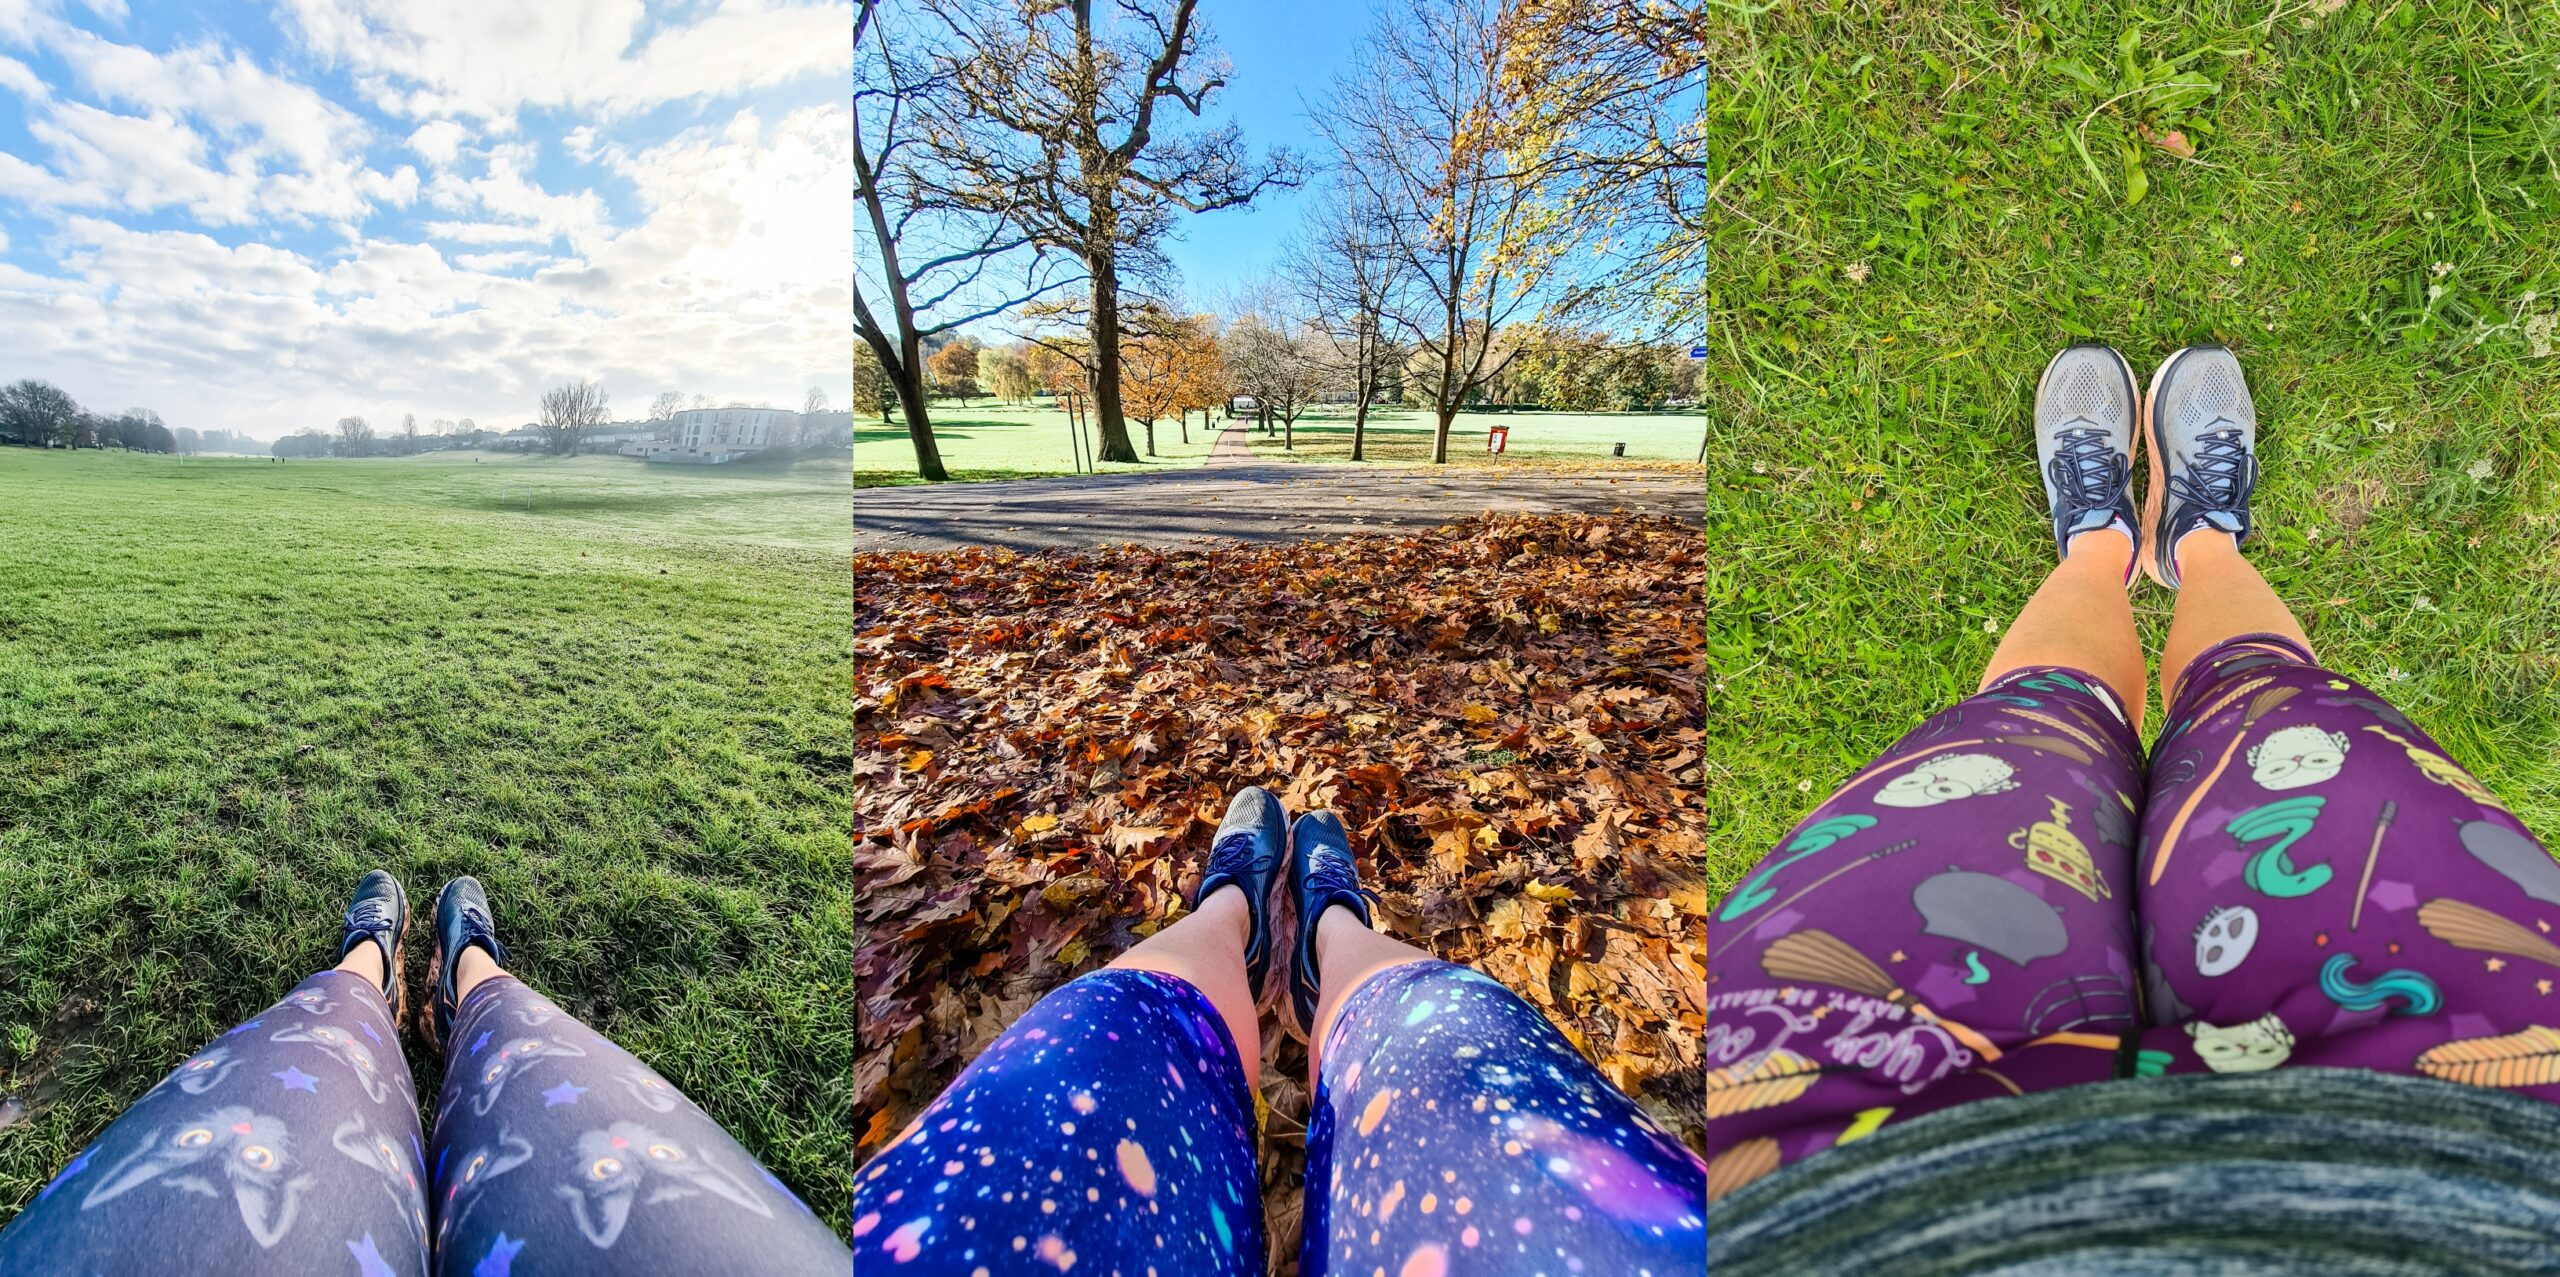 Collage of 3 images showing legs and feet wearing different coloured and patterned running leggings